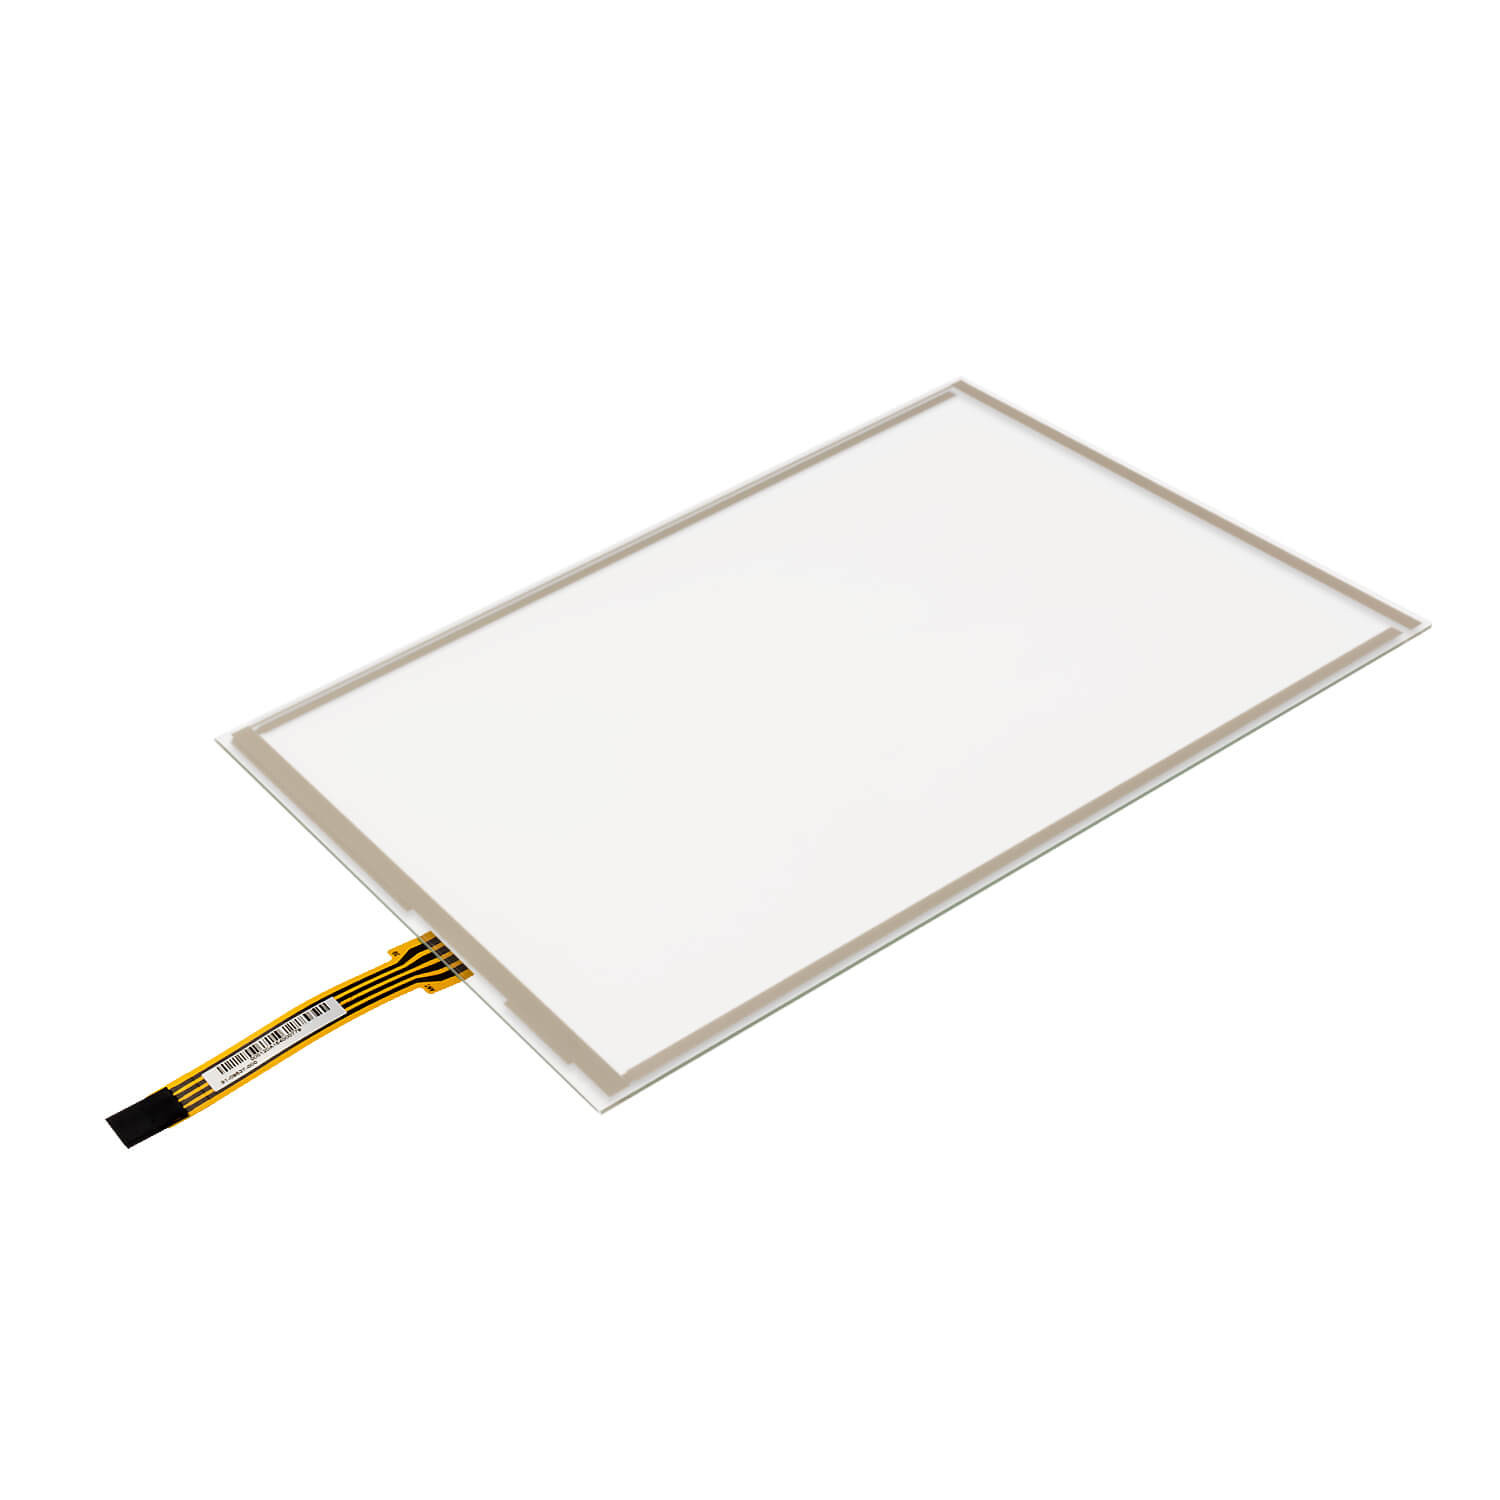 RTP10.4-4W-AMT-9537-000 - resistive touch screen (10.4-inch, 16:9 aspect ratio, 1.8 mm glass)